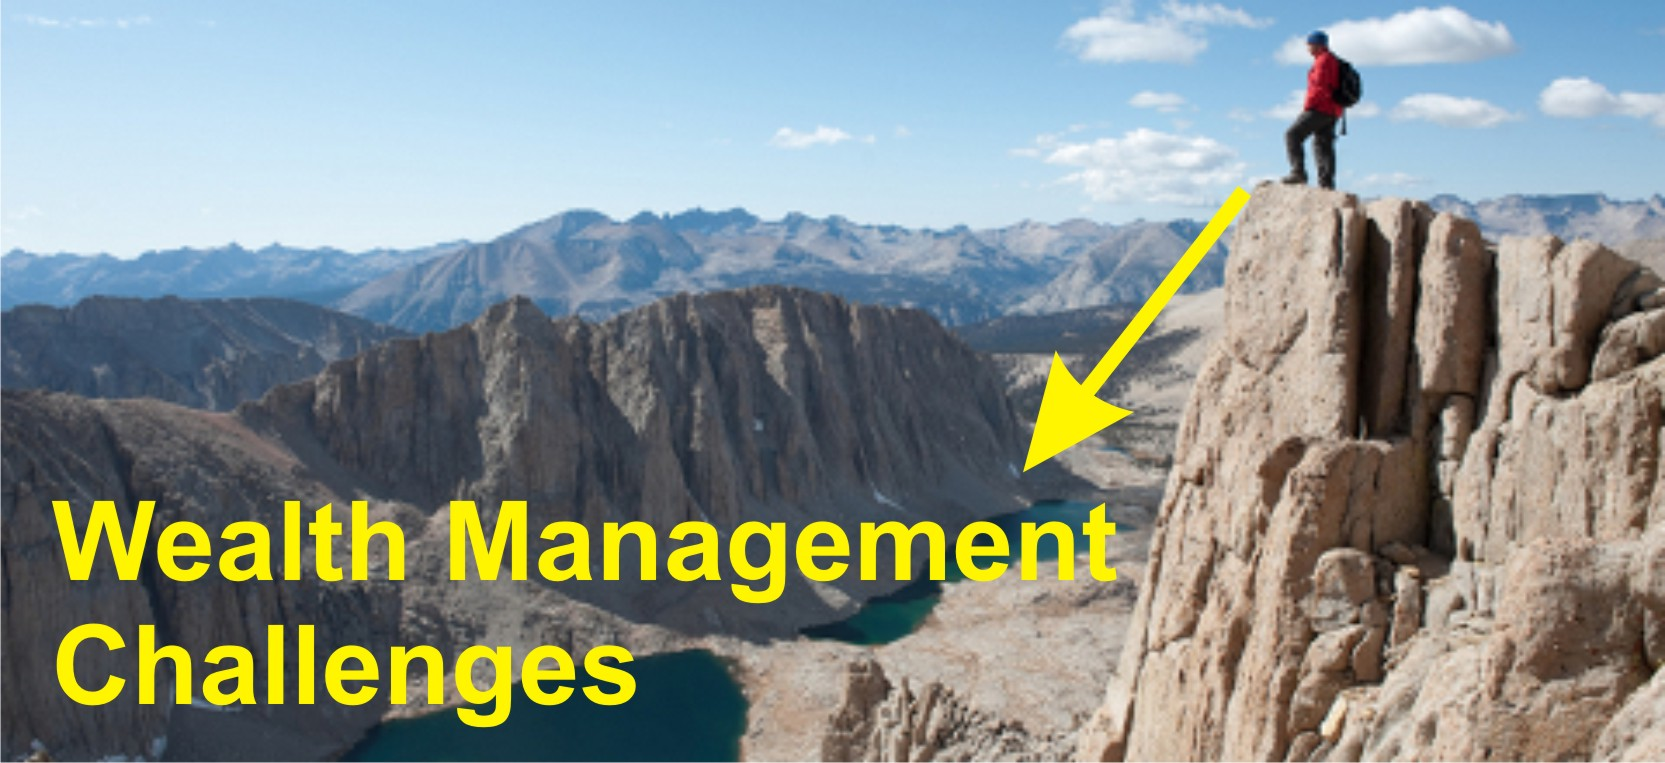 Title: Wealth Management Challenges - Description: Challenges before Wealth Management Organization